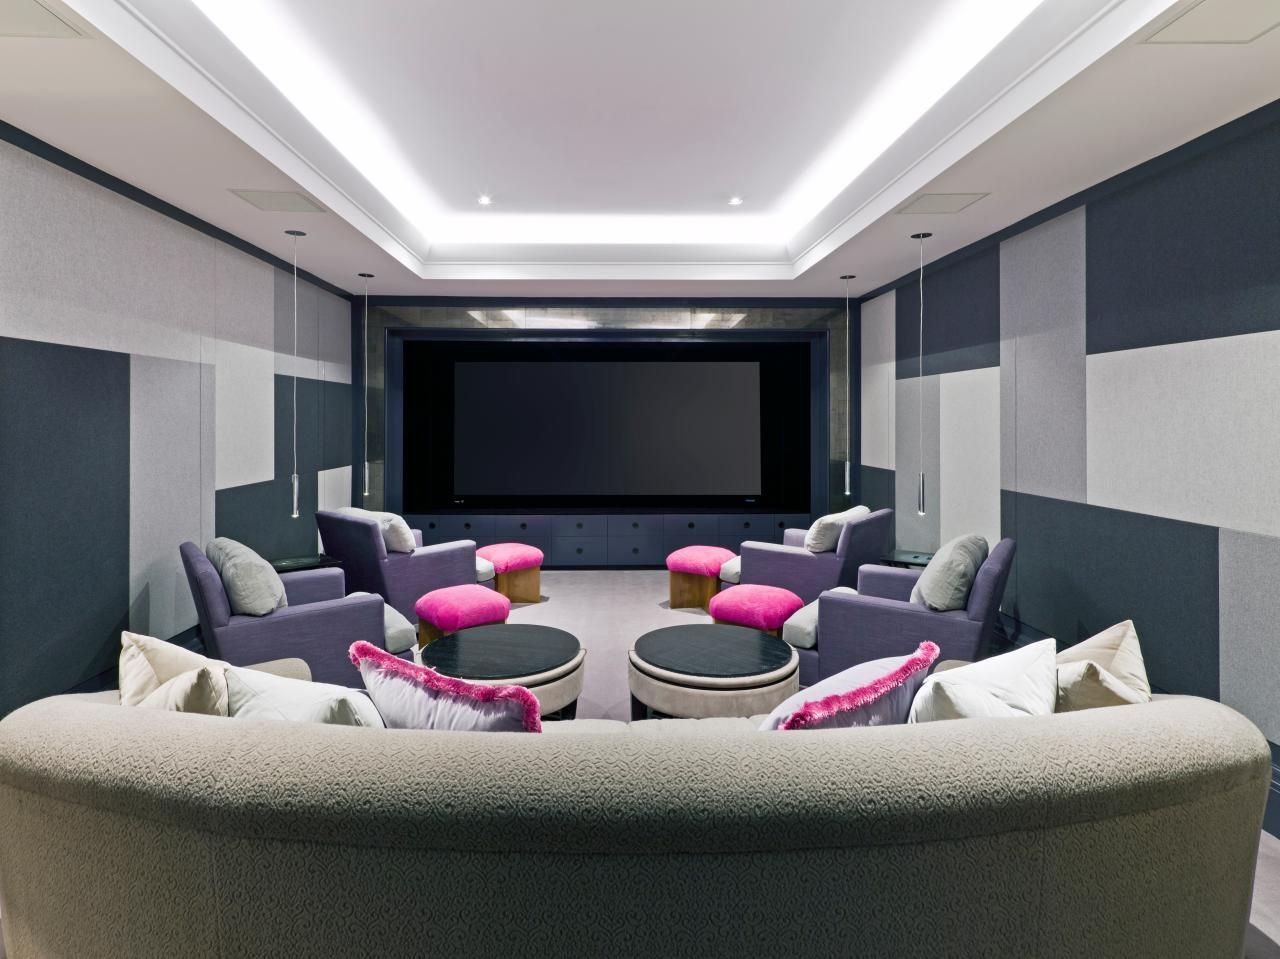 Amazing Home Theater Designs | Theatre design, Remodeling ideas ...